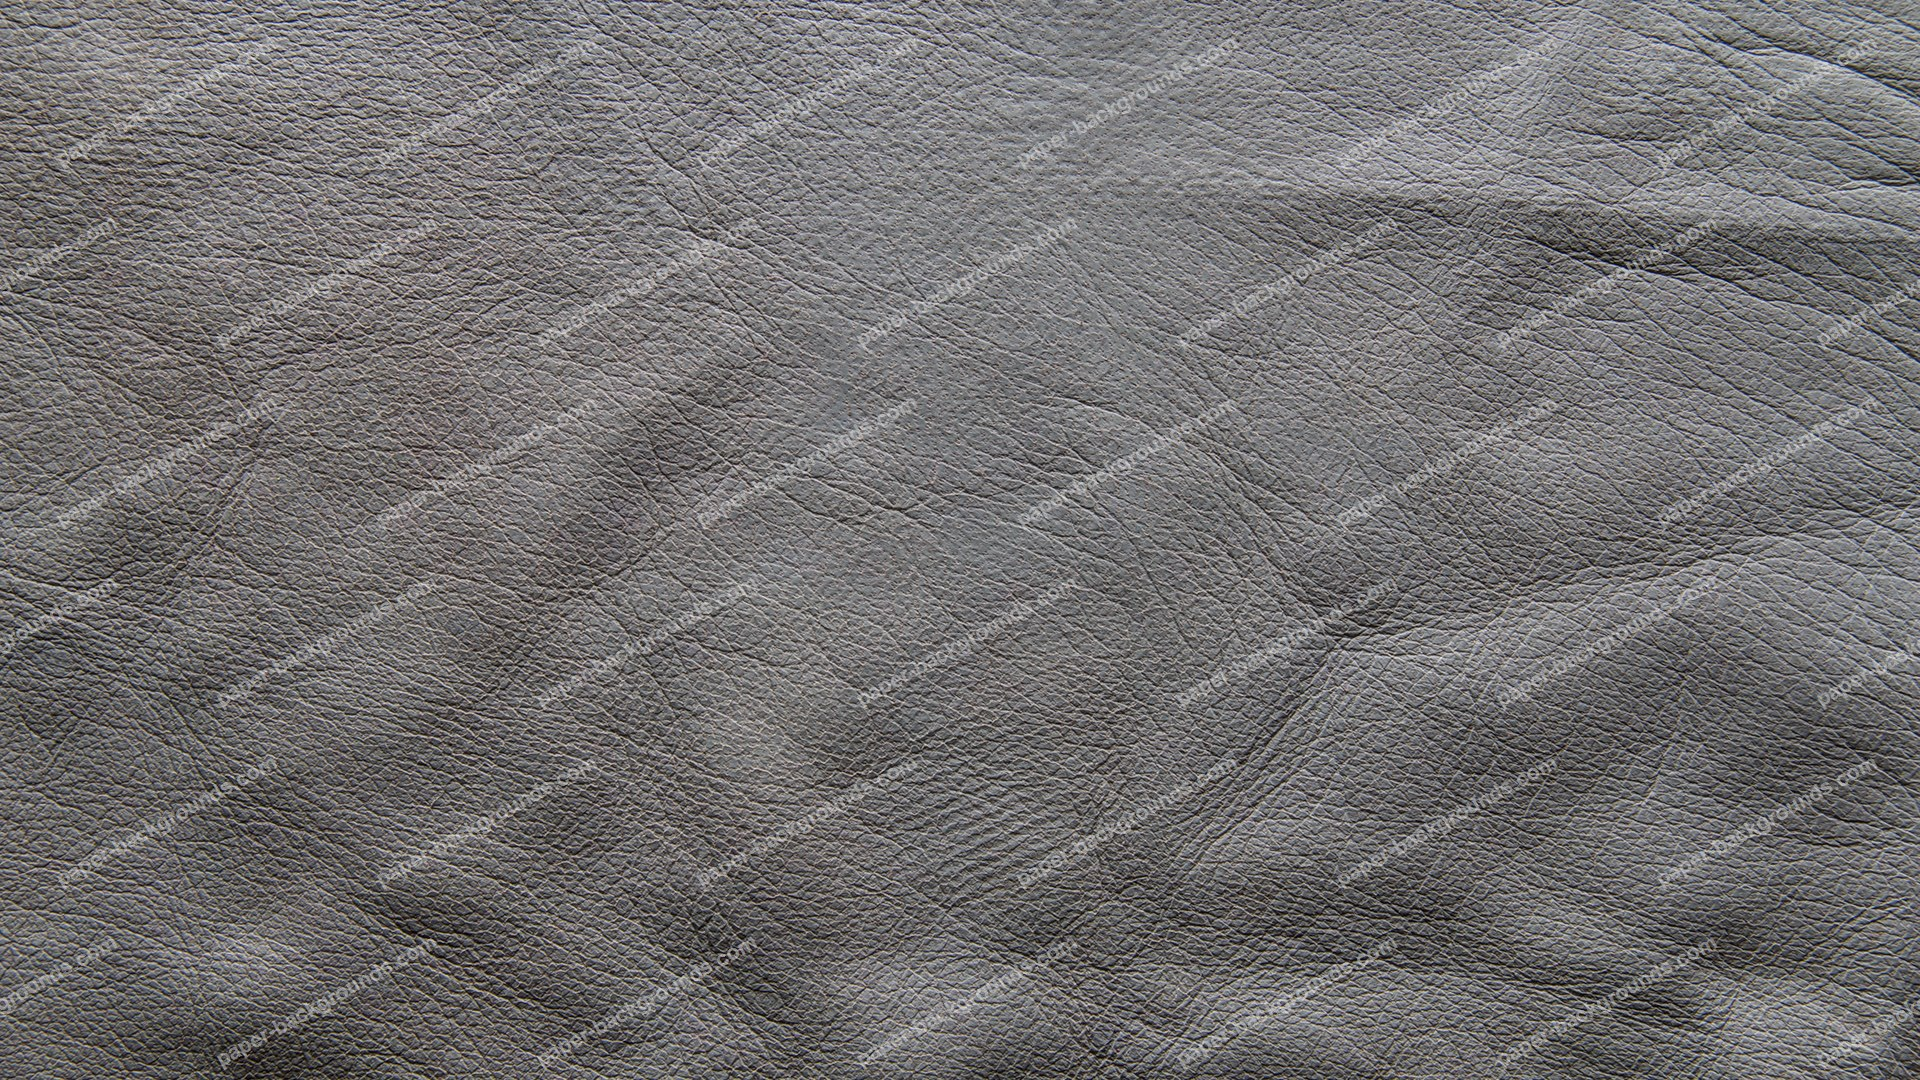 Gray Vintage Soft Leather Texture HD 1920 x 1080p